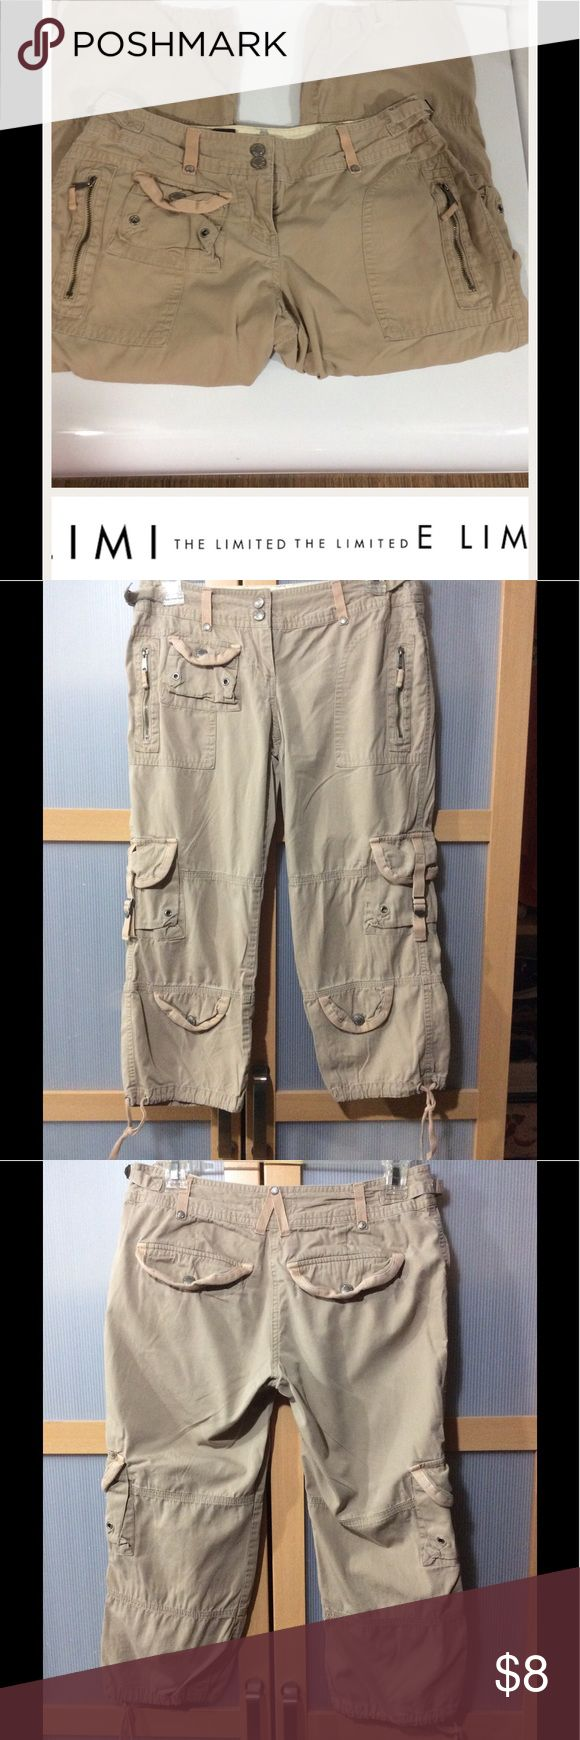 The Limited capris Light khaki color Capri/cargos,  rise 7, inseam 20in all zippers and snaps work, one small stain on belt loop please see last picture. The Limited Pants Capris